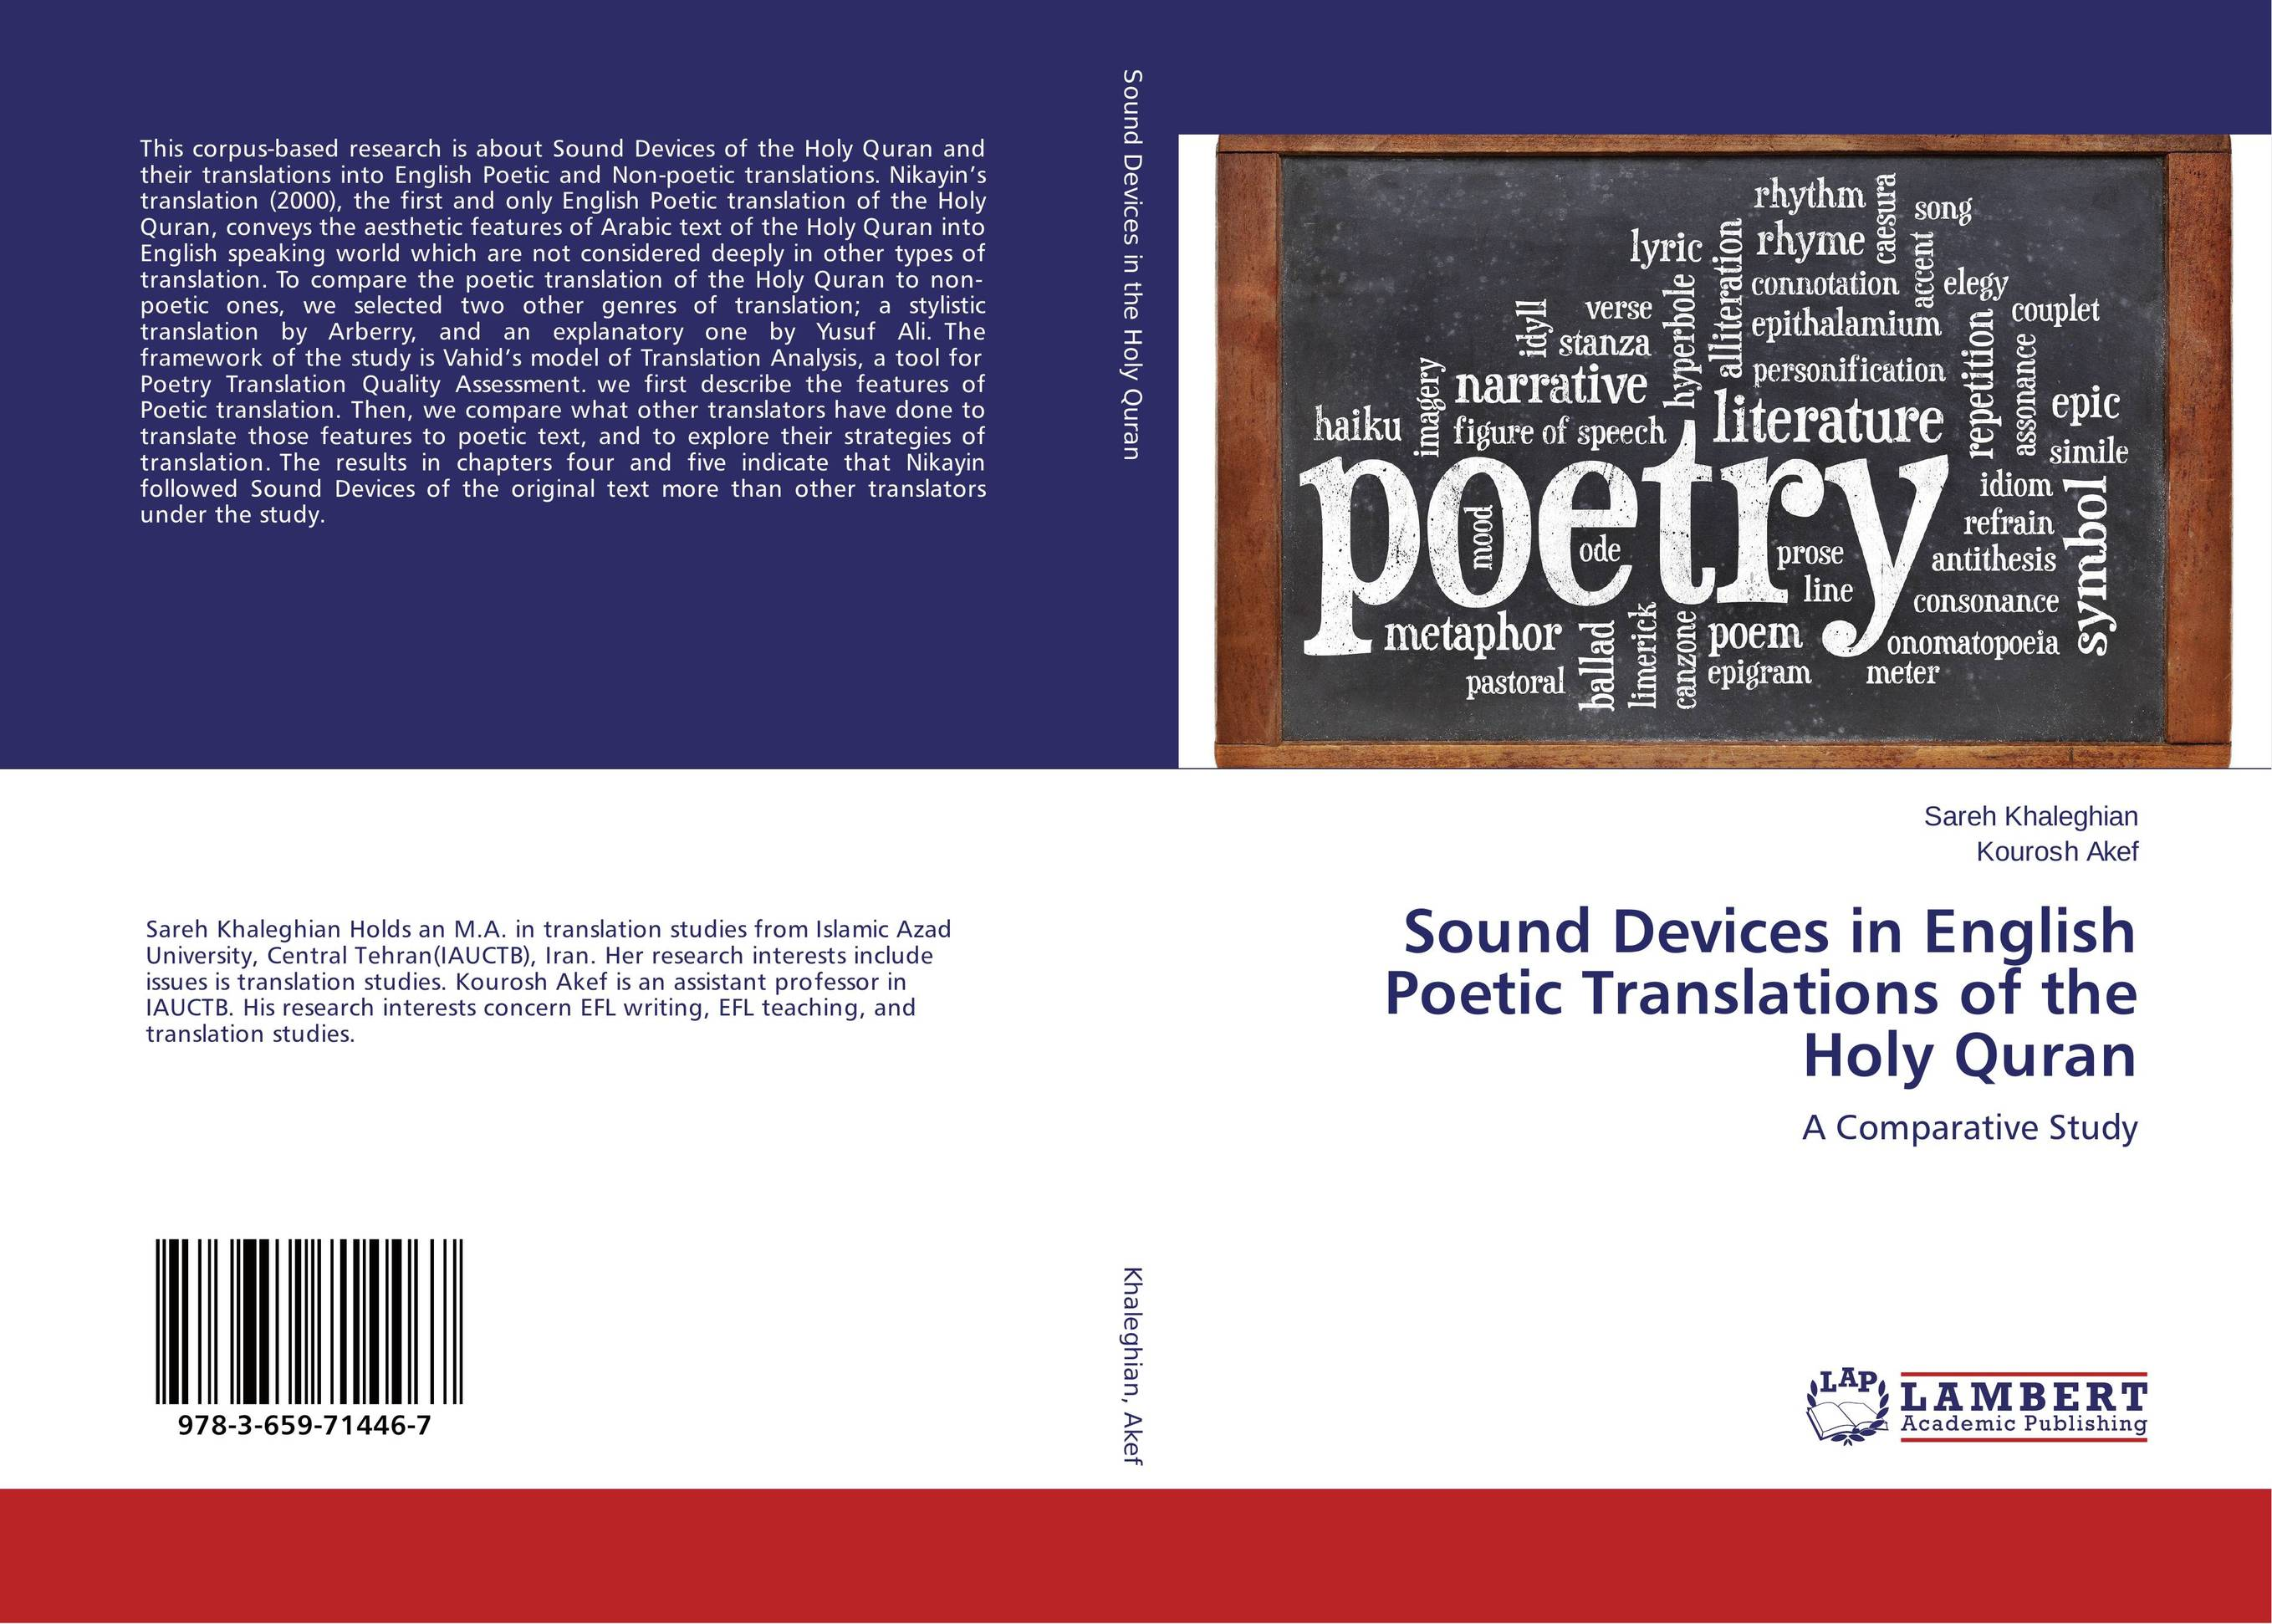 Sound Devices in English Poetic Translations of the Holy Quran suleman dangor shaykh yusuf of macassar